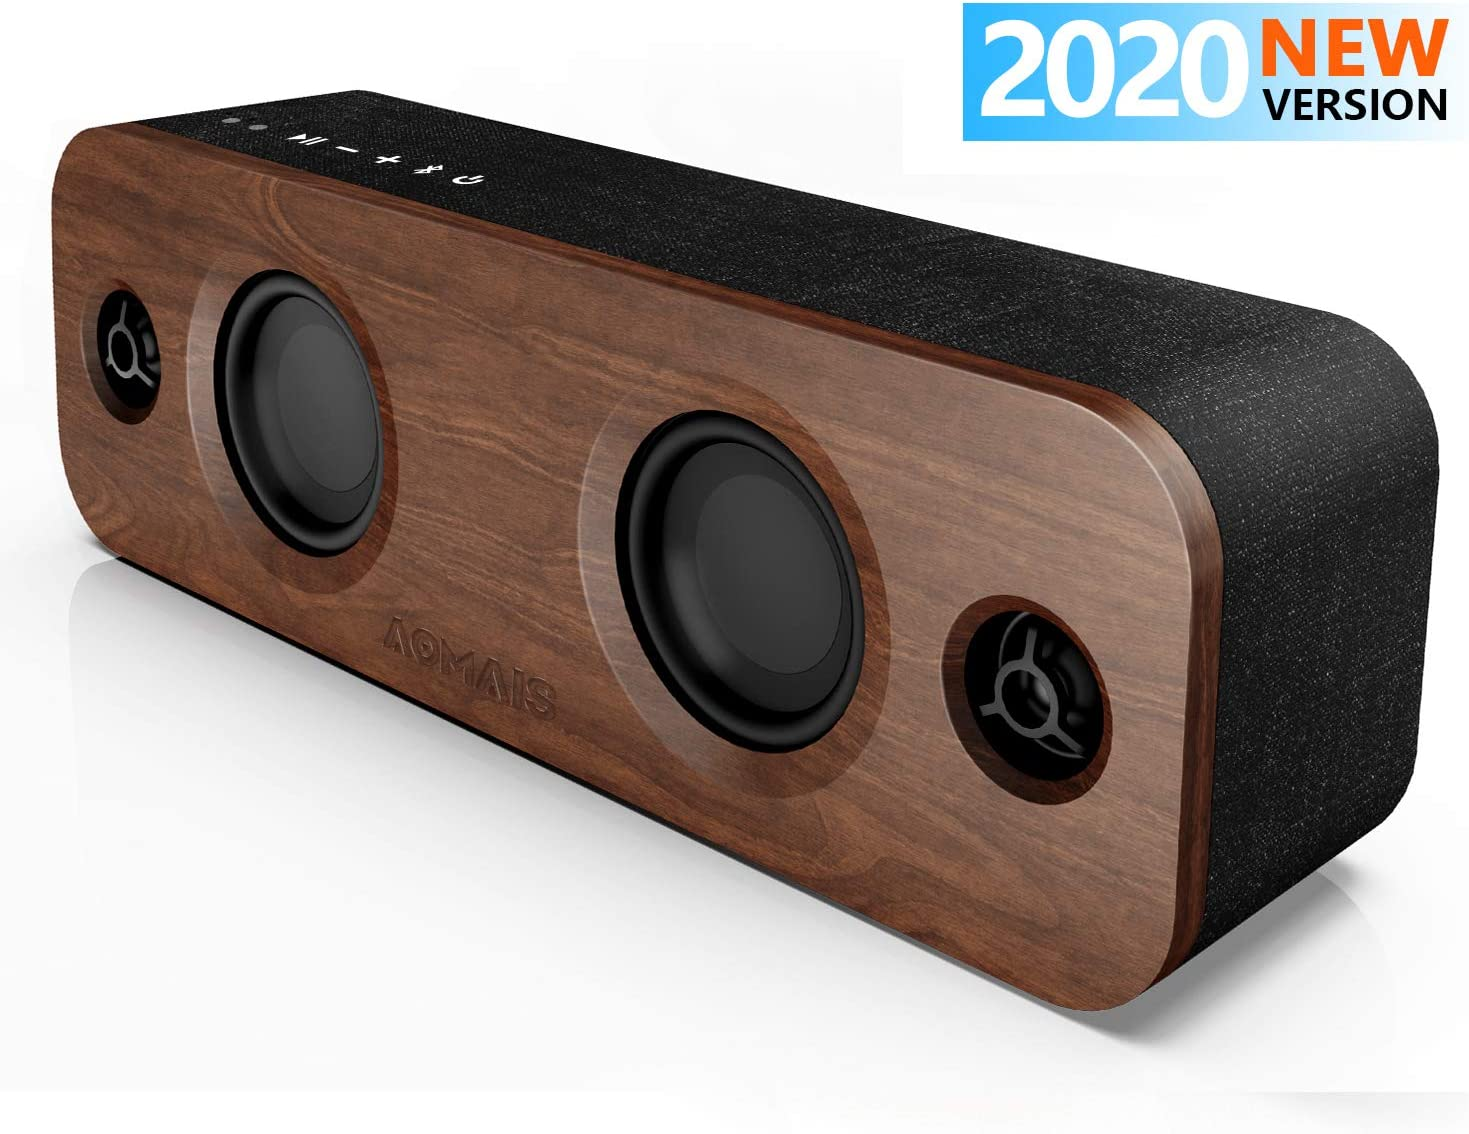 AOMAIS Life Bluetooth Speakers, 30W Loud Home Party Wireless Speaker, 2 Woofer and 2 Tweeters for Deeper Bass Stereo Sound, 100 Ft Bluetooth V5.0 and 12-Hour Playtime Subwoofer, Imitation Wood Panel